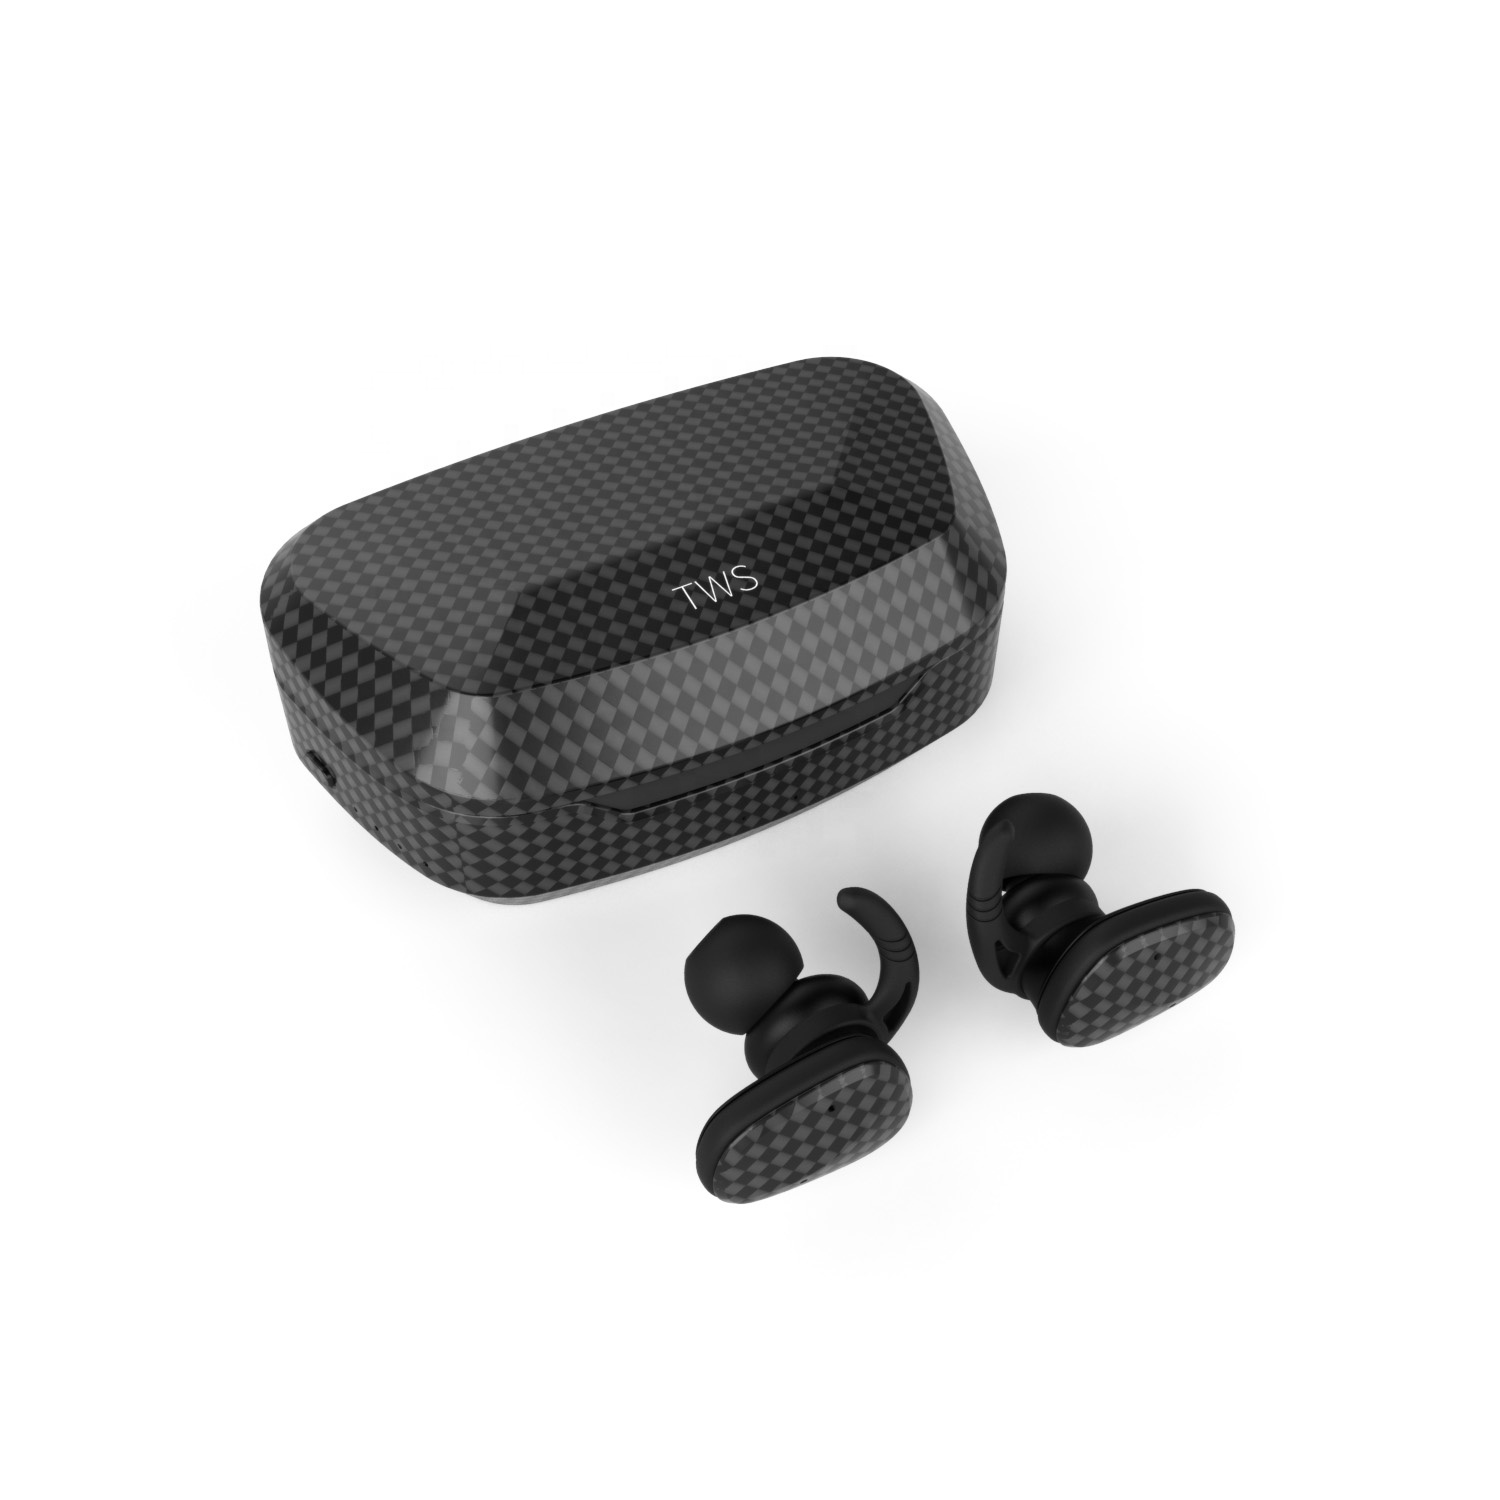 New Arrival Best Selling Product 2020 Electronics IPX5/7 wireless earbuds with large charging case for power bank - idealBuds Earphone | idealBuds.net